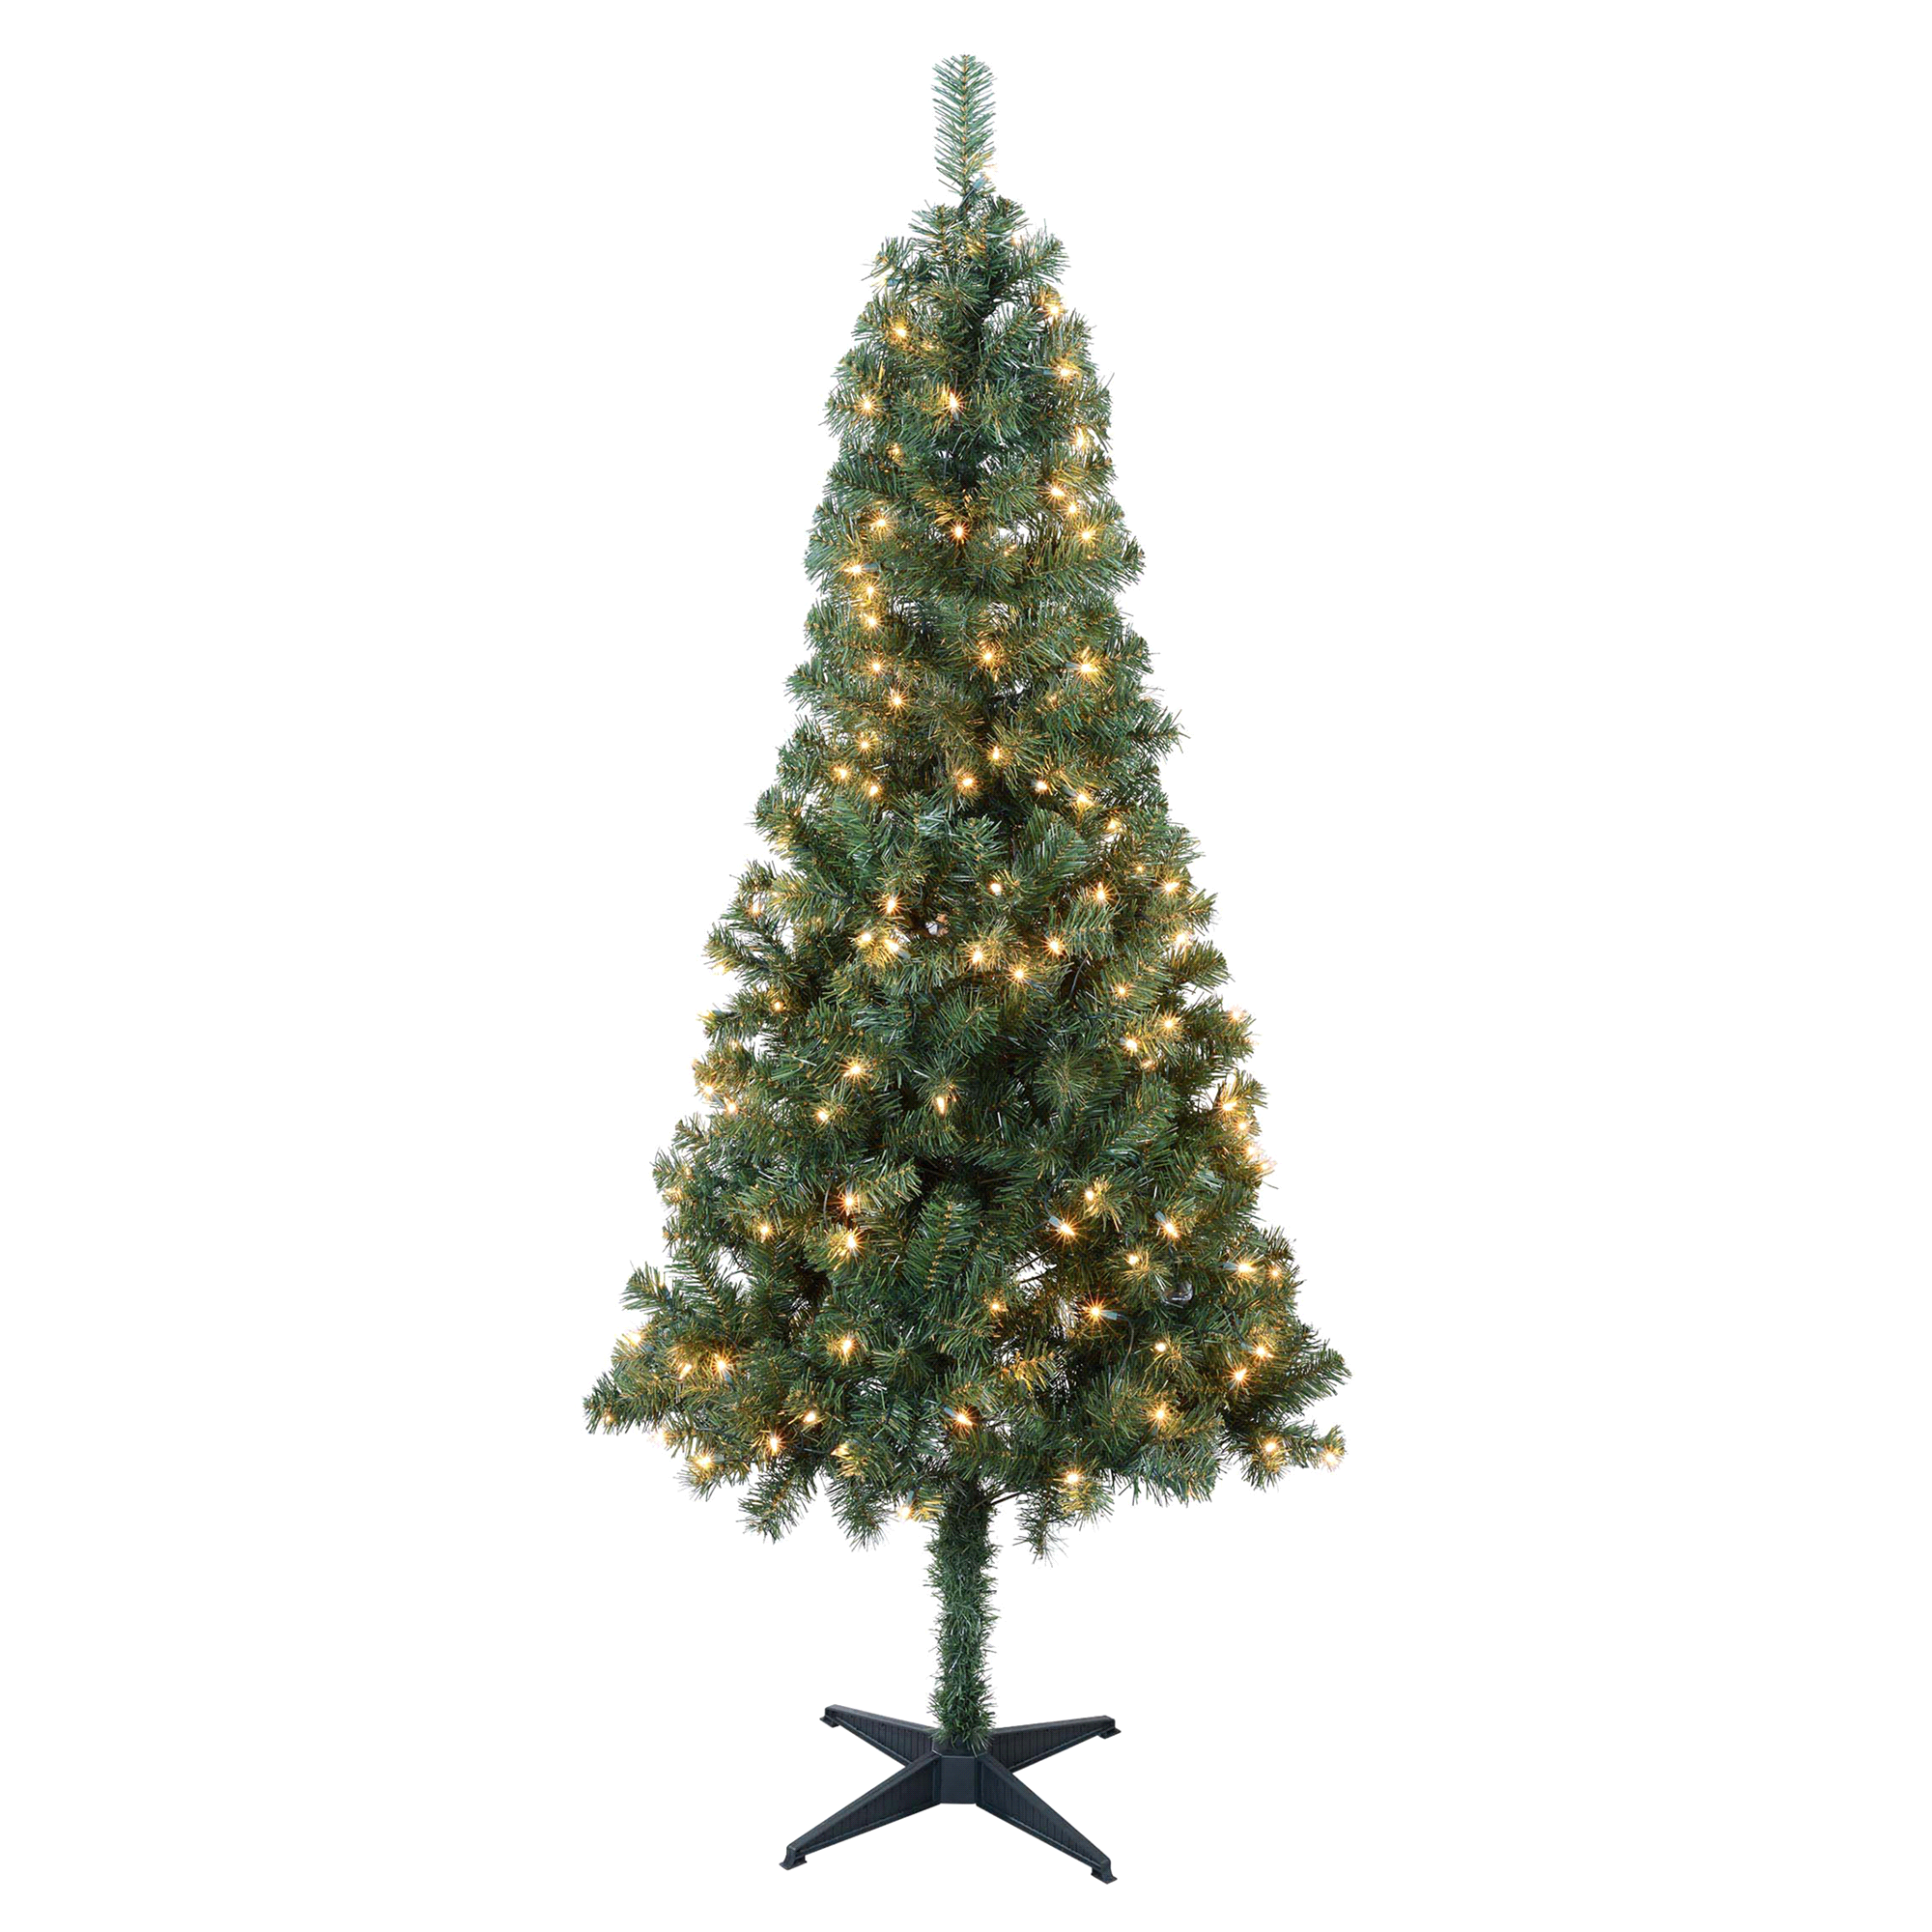 6 Foot Pre Lit Tacoma PVC Tree with Plastic Stand | Meijer.com